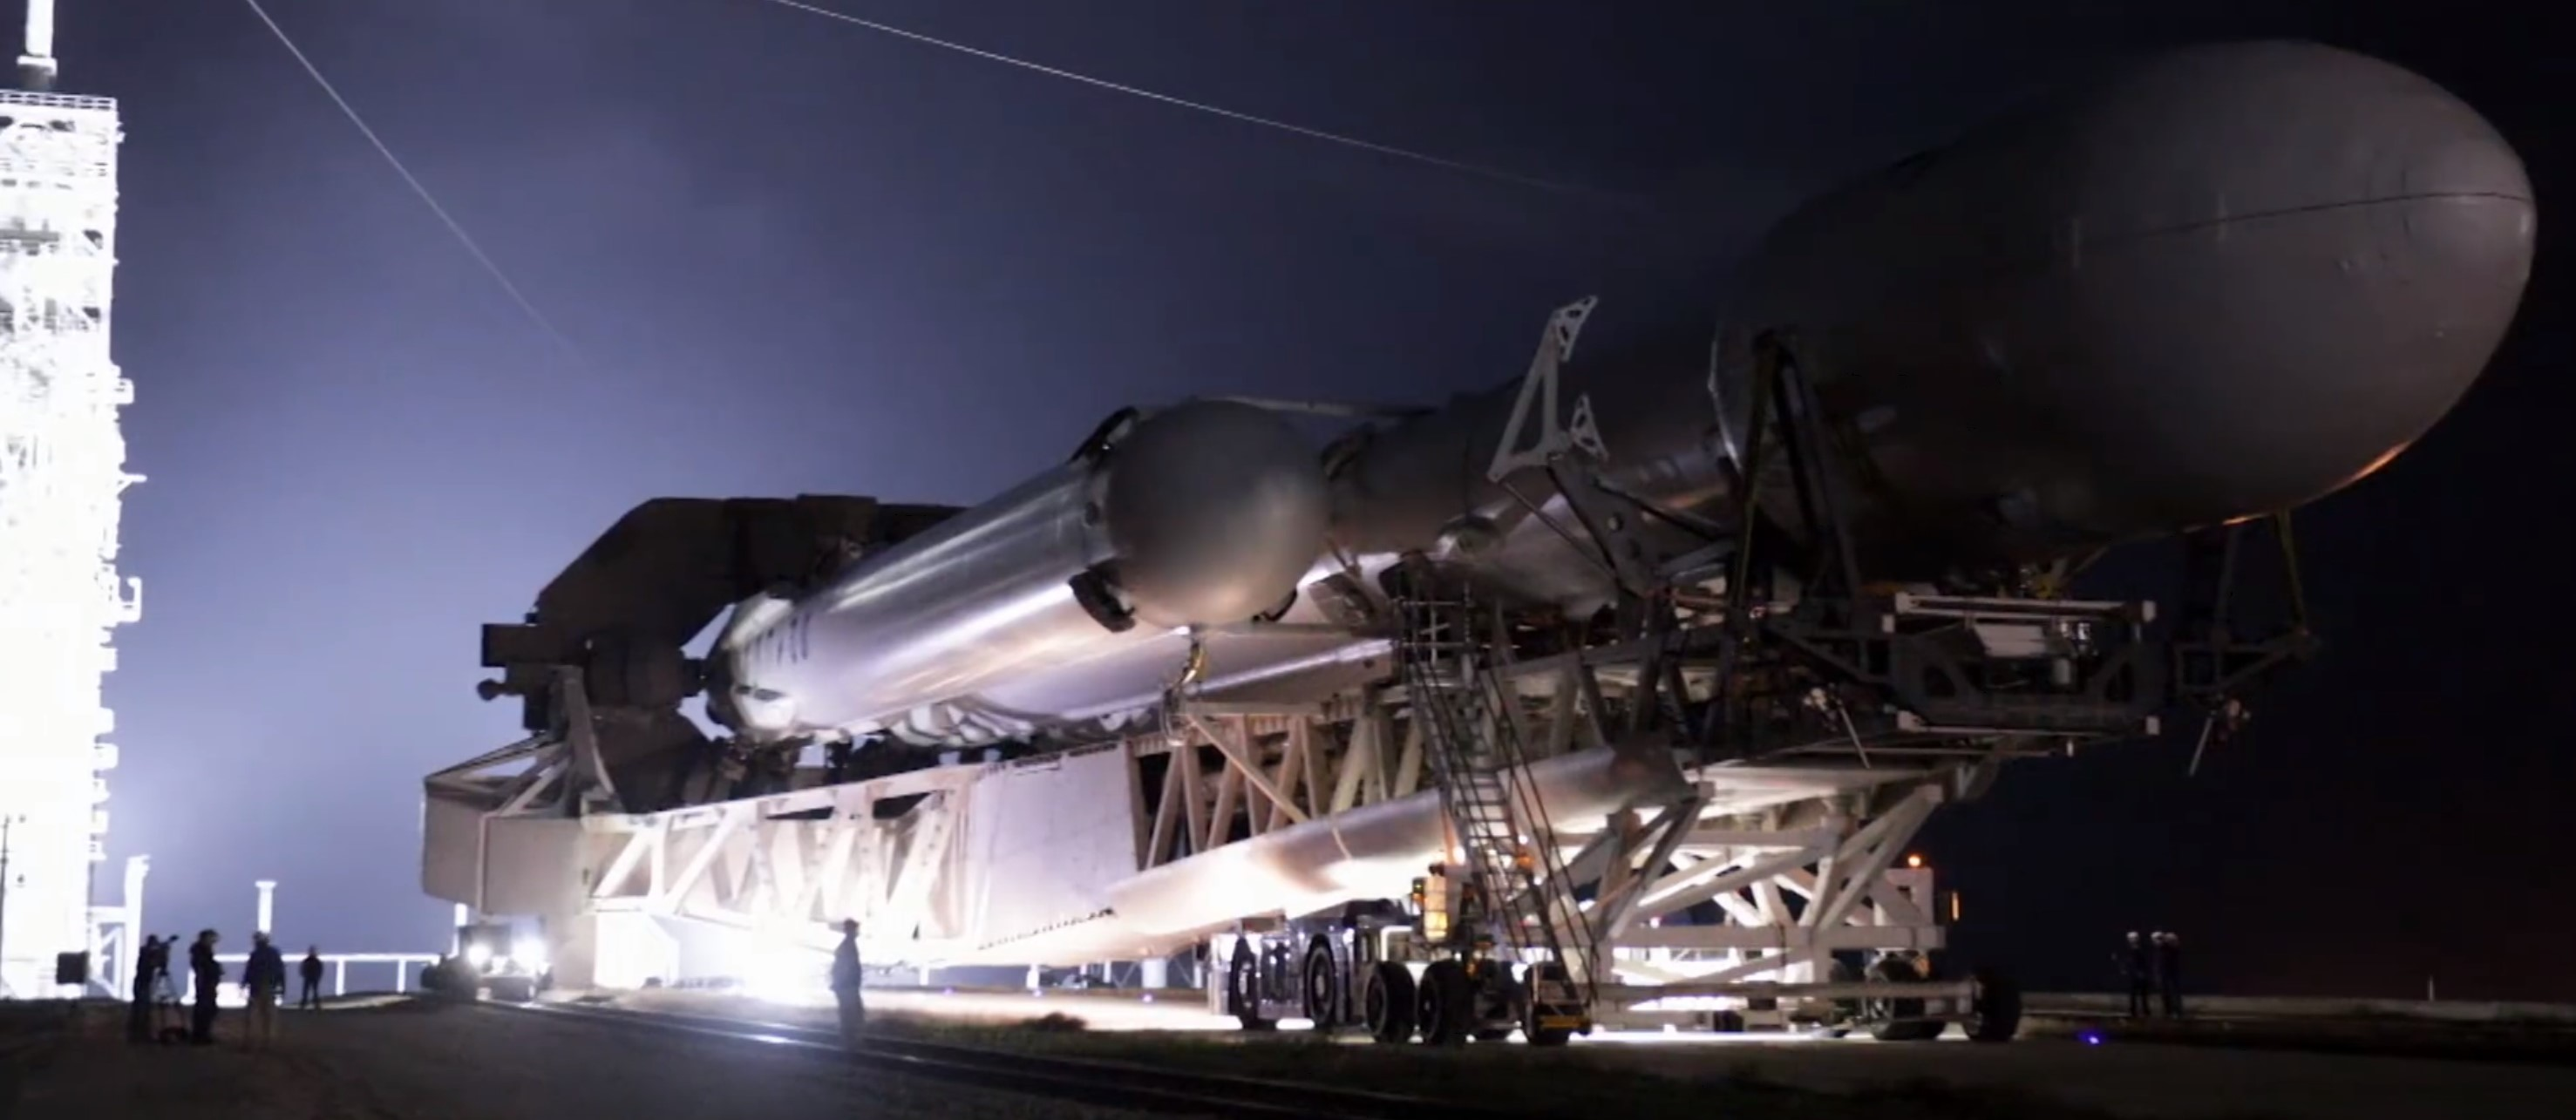 FH rollout 7 (SpaceX) crop